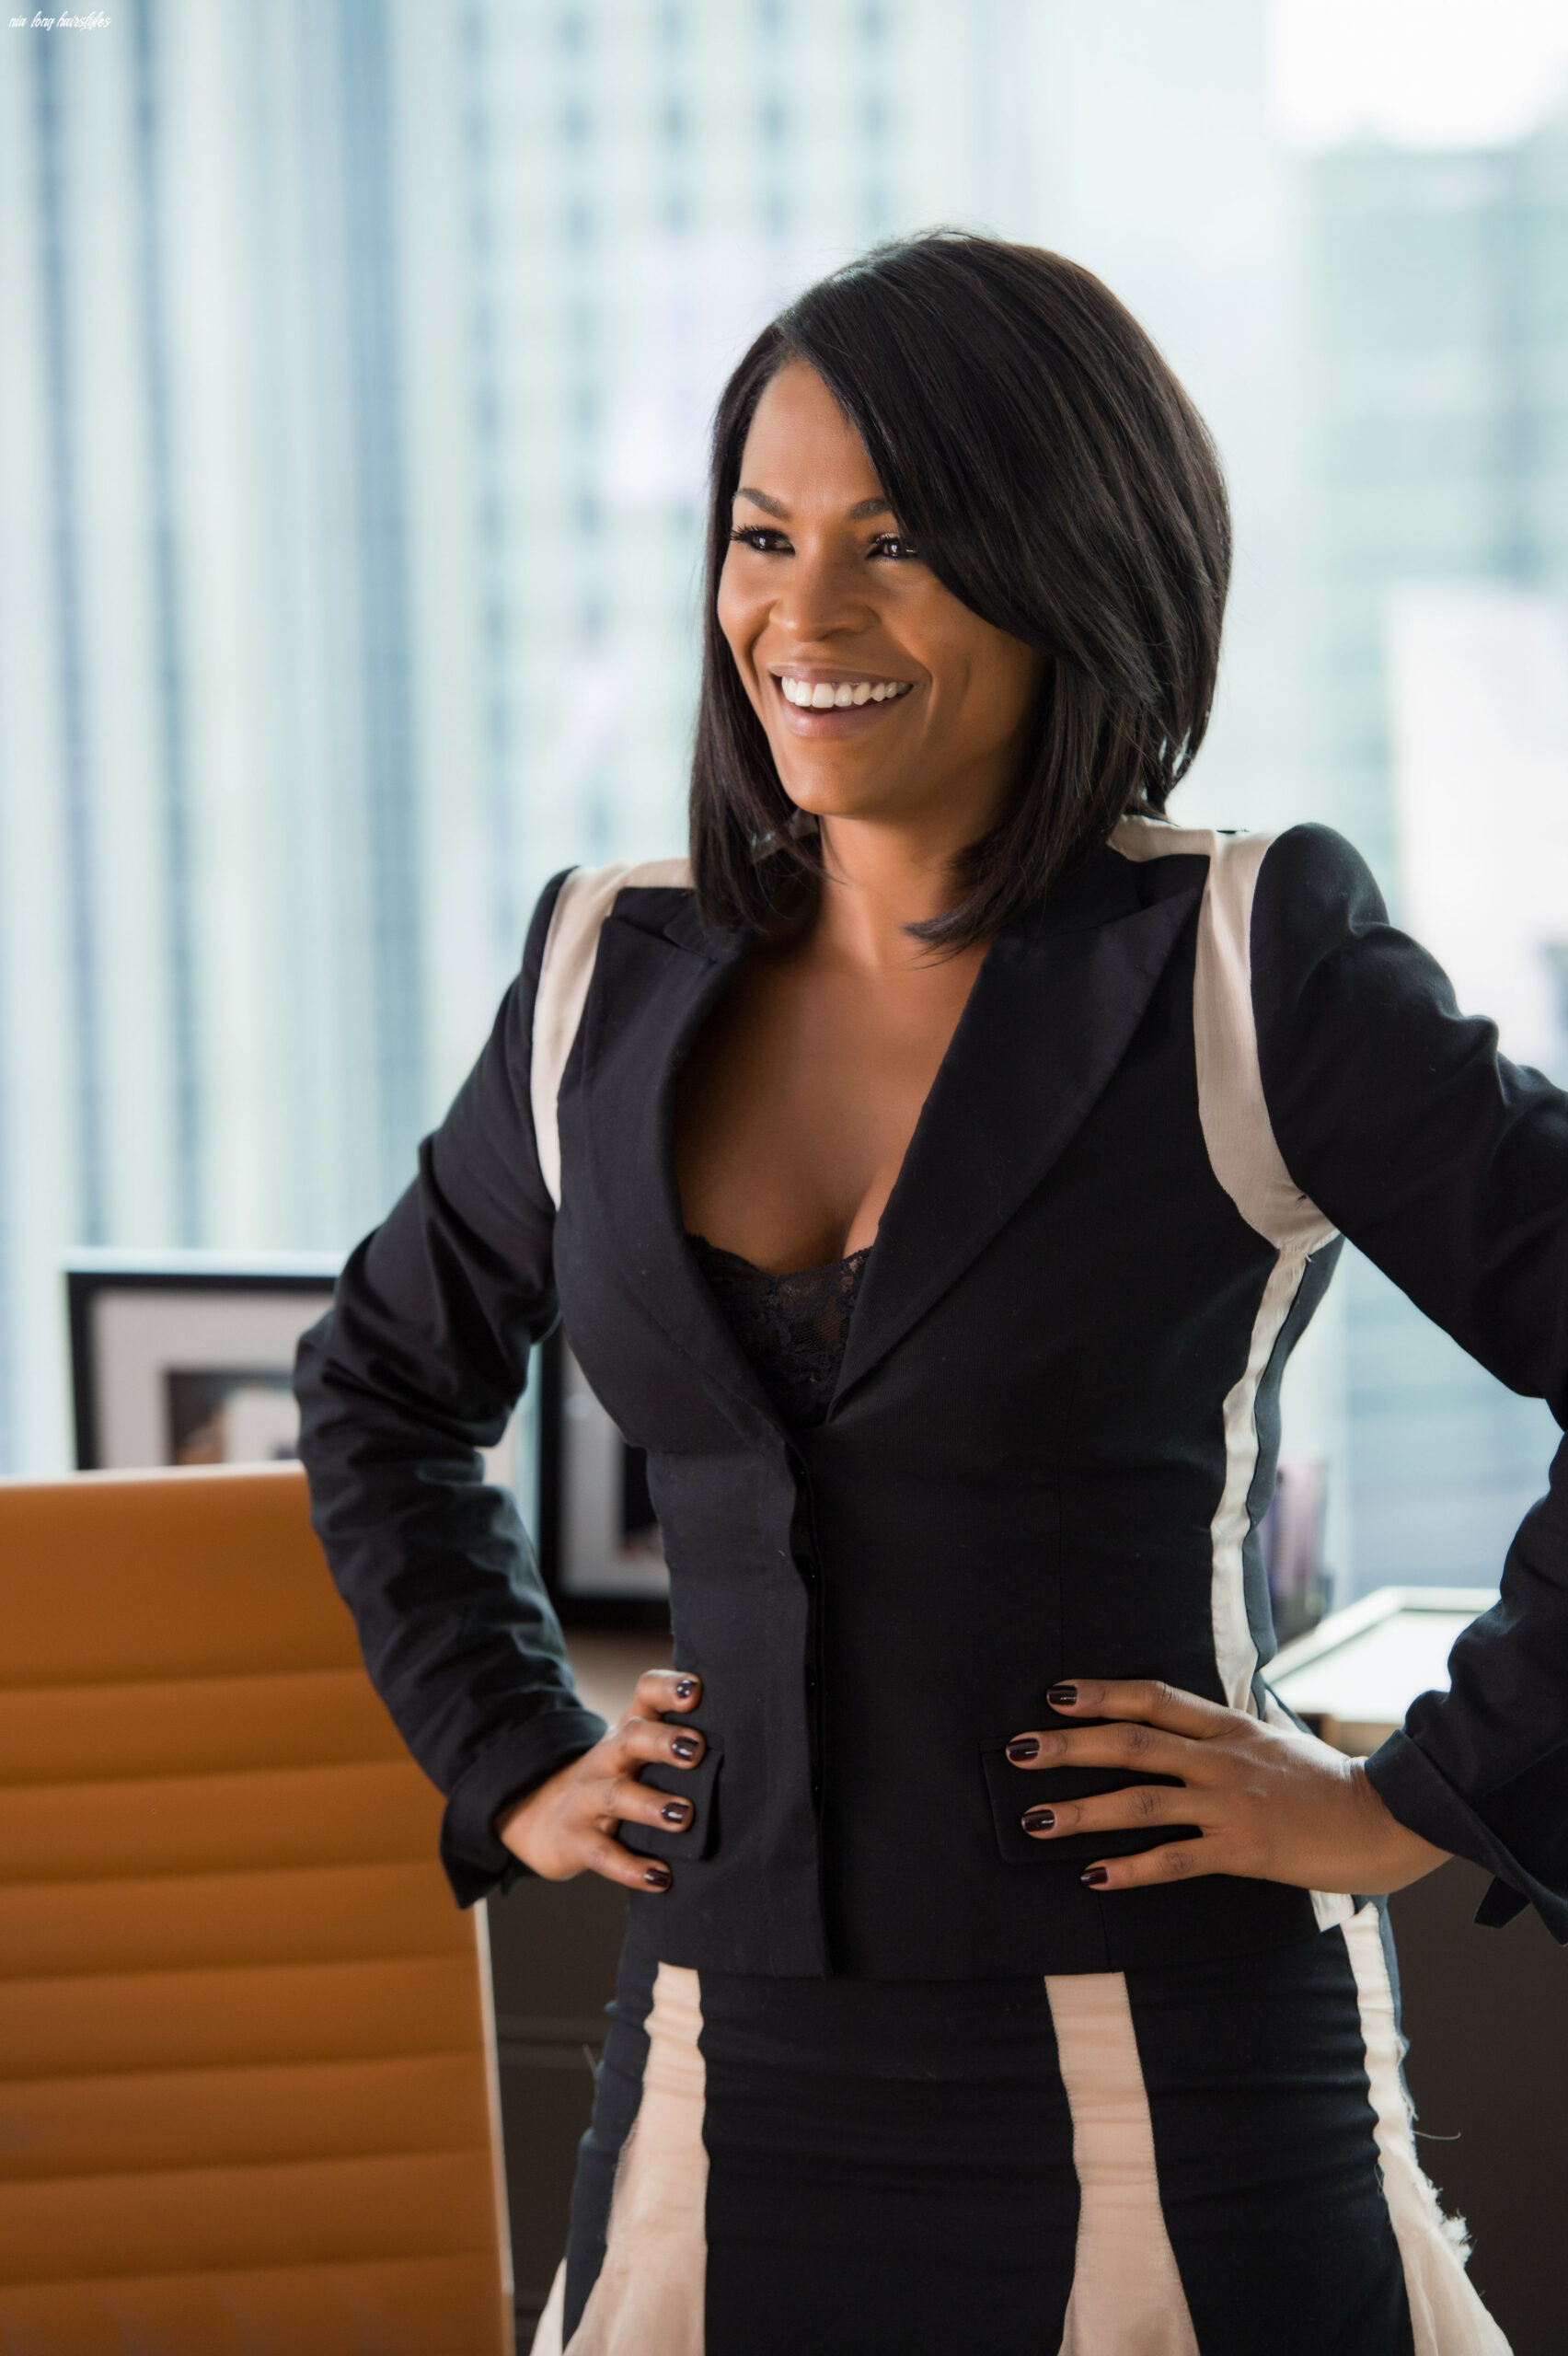 Nia long talks the best man holiday (with images) | nia long hair